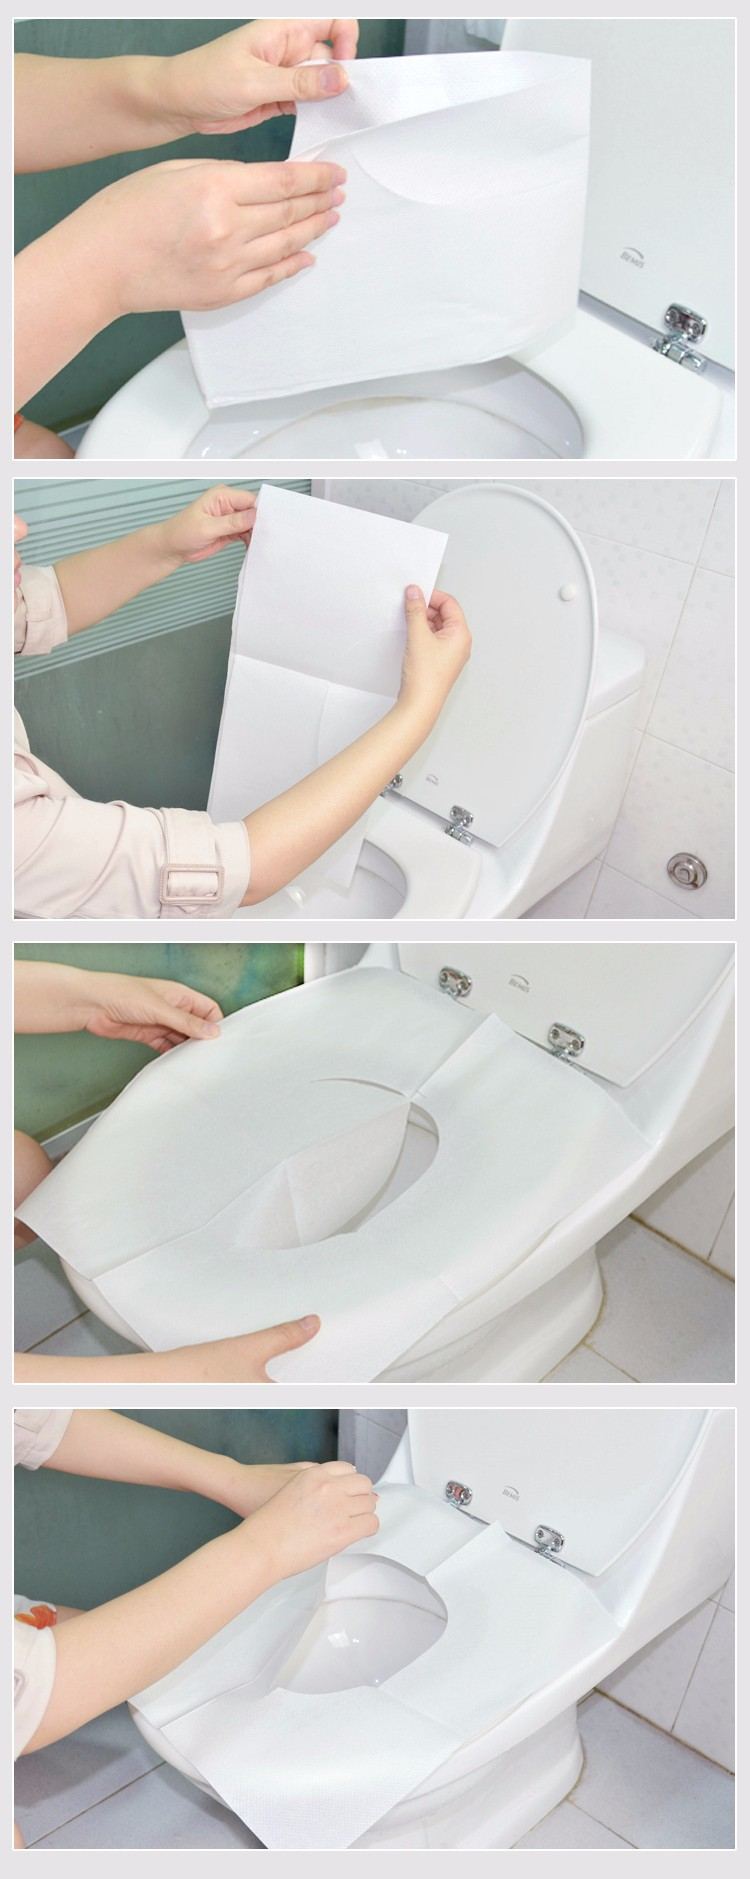 Hot China Products Toilets Seat Covers for American Market